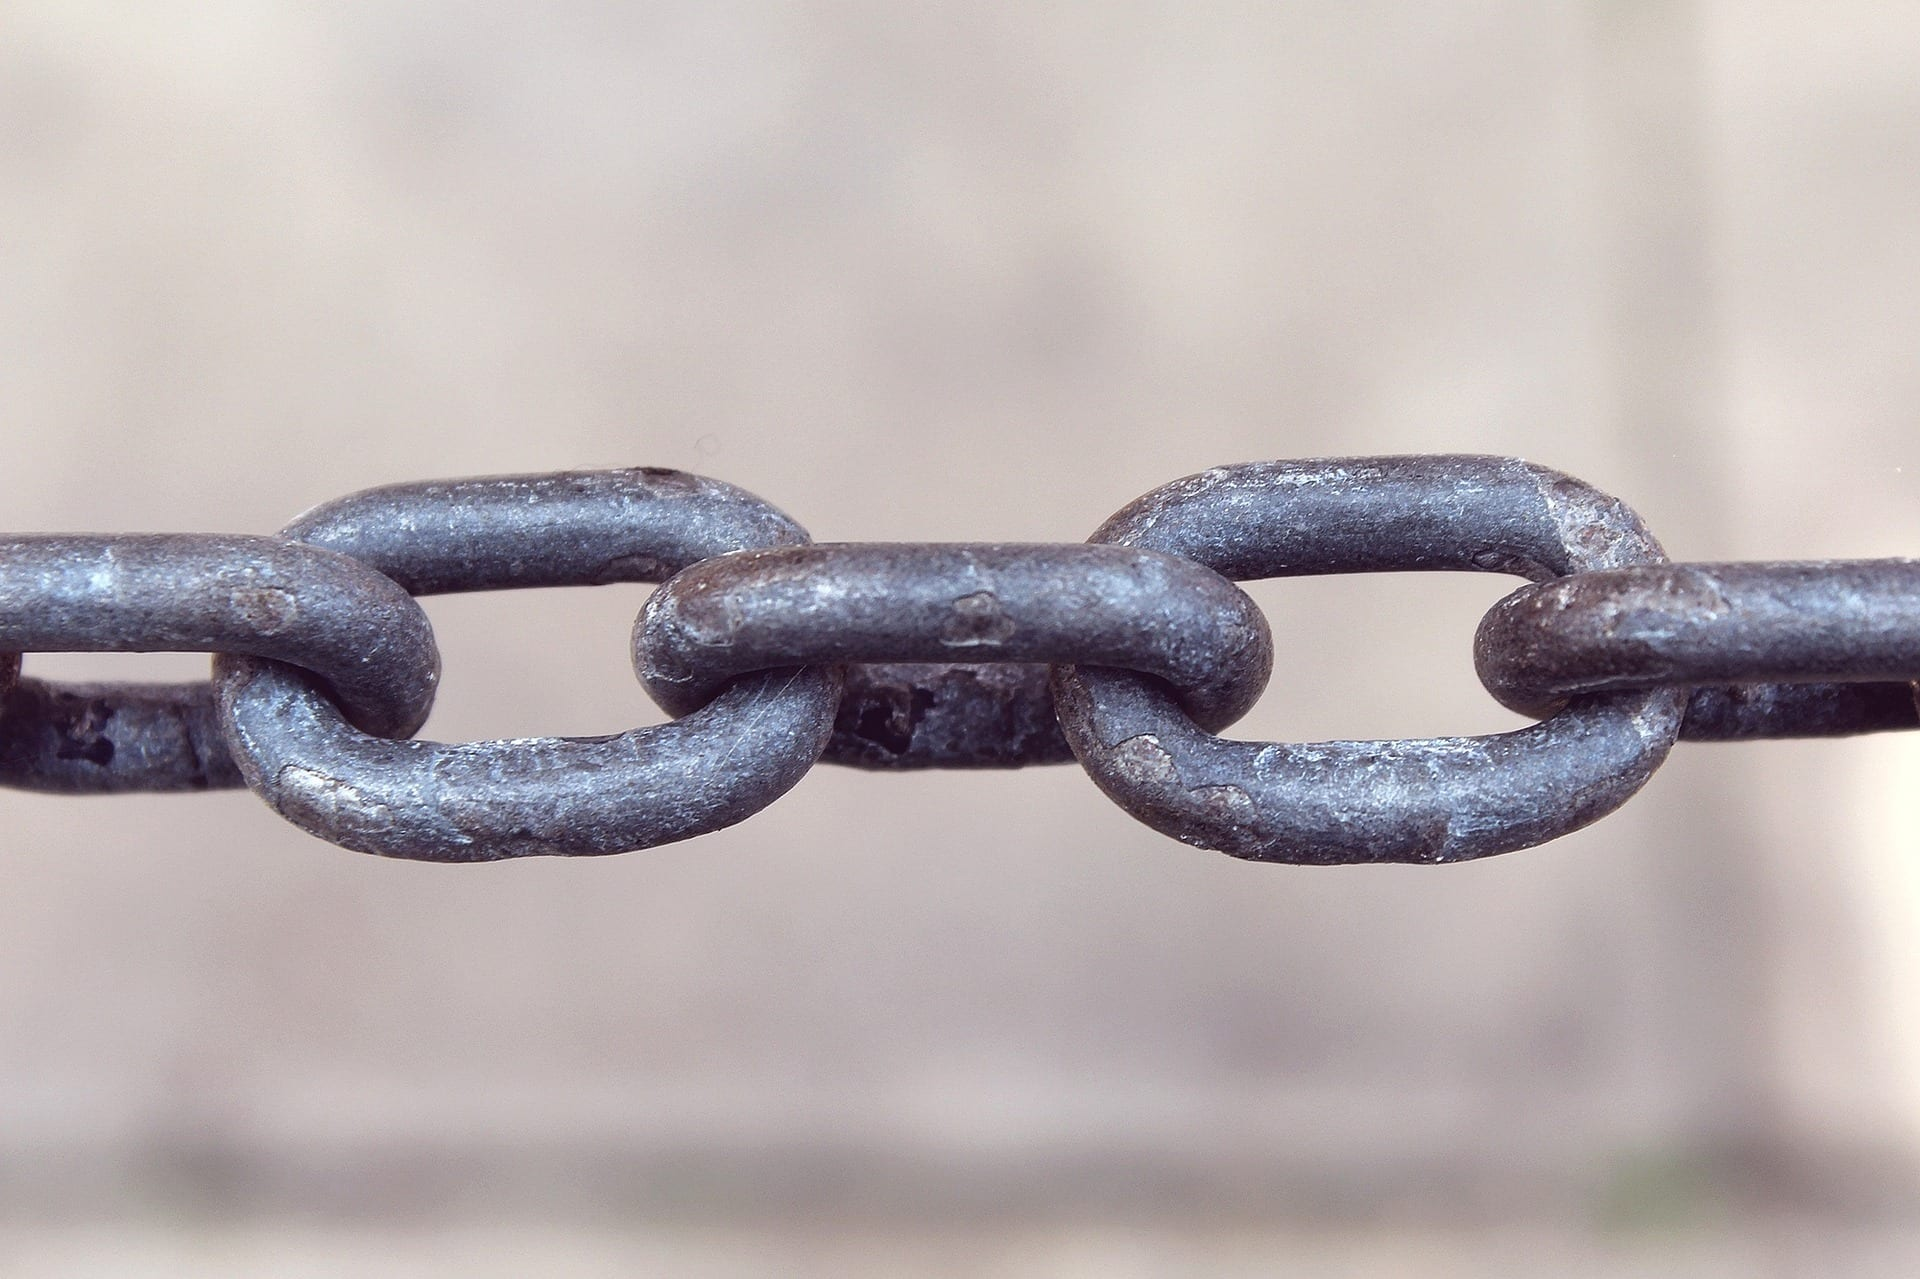 image of chain links